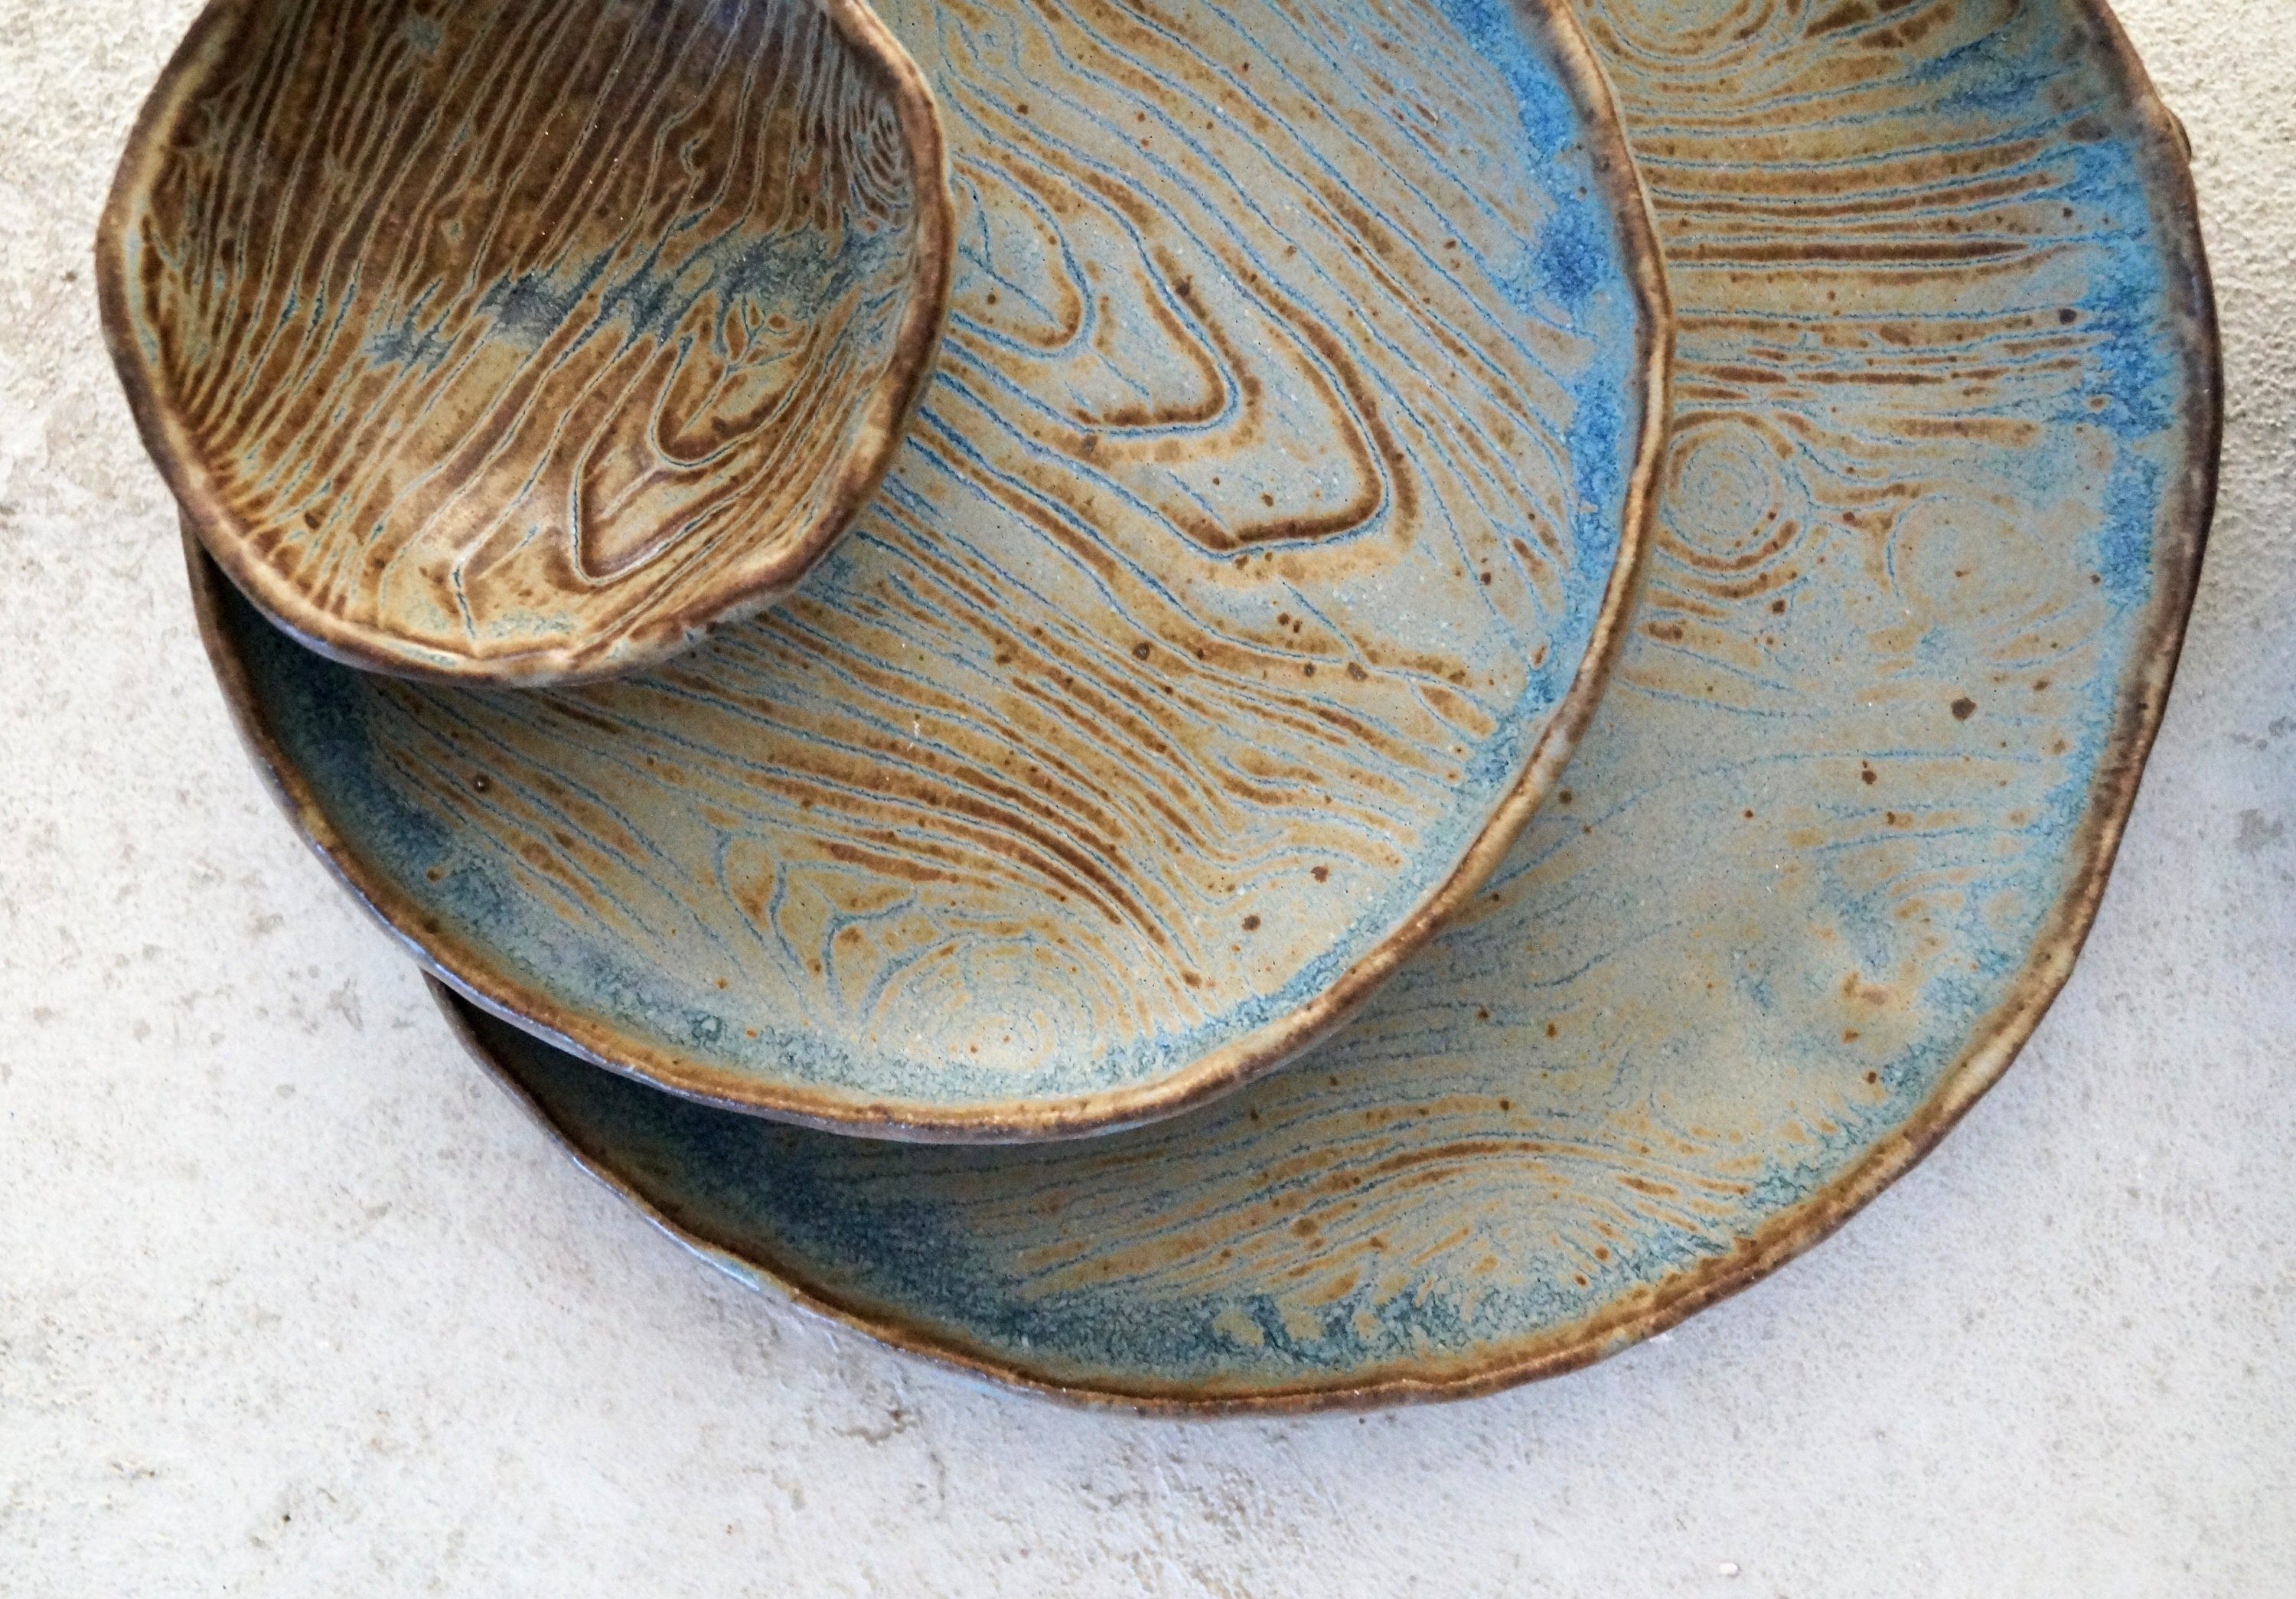 Handmade Ceramic Dish Set Ceramic Dinner Plates Serving/Decorative Pottery SetWood Texture Rustic Glaze Unique One of The Kind Gift. & Handmade Ceramic Dish Set Ceramic Dinner Plates Serving/Decorative ...